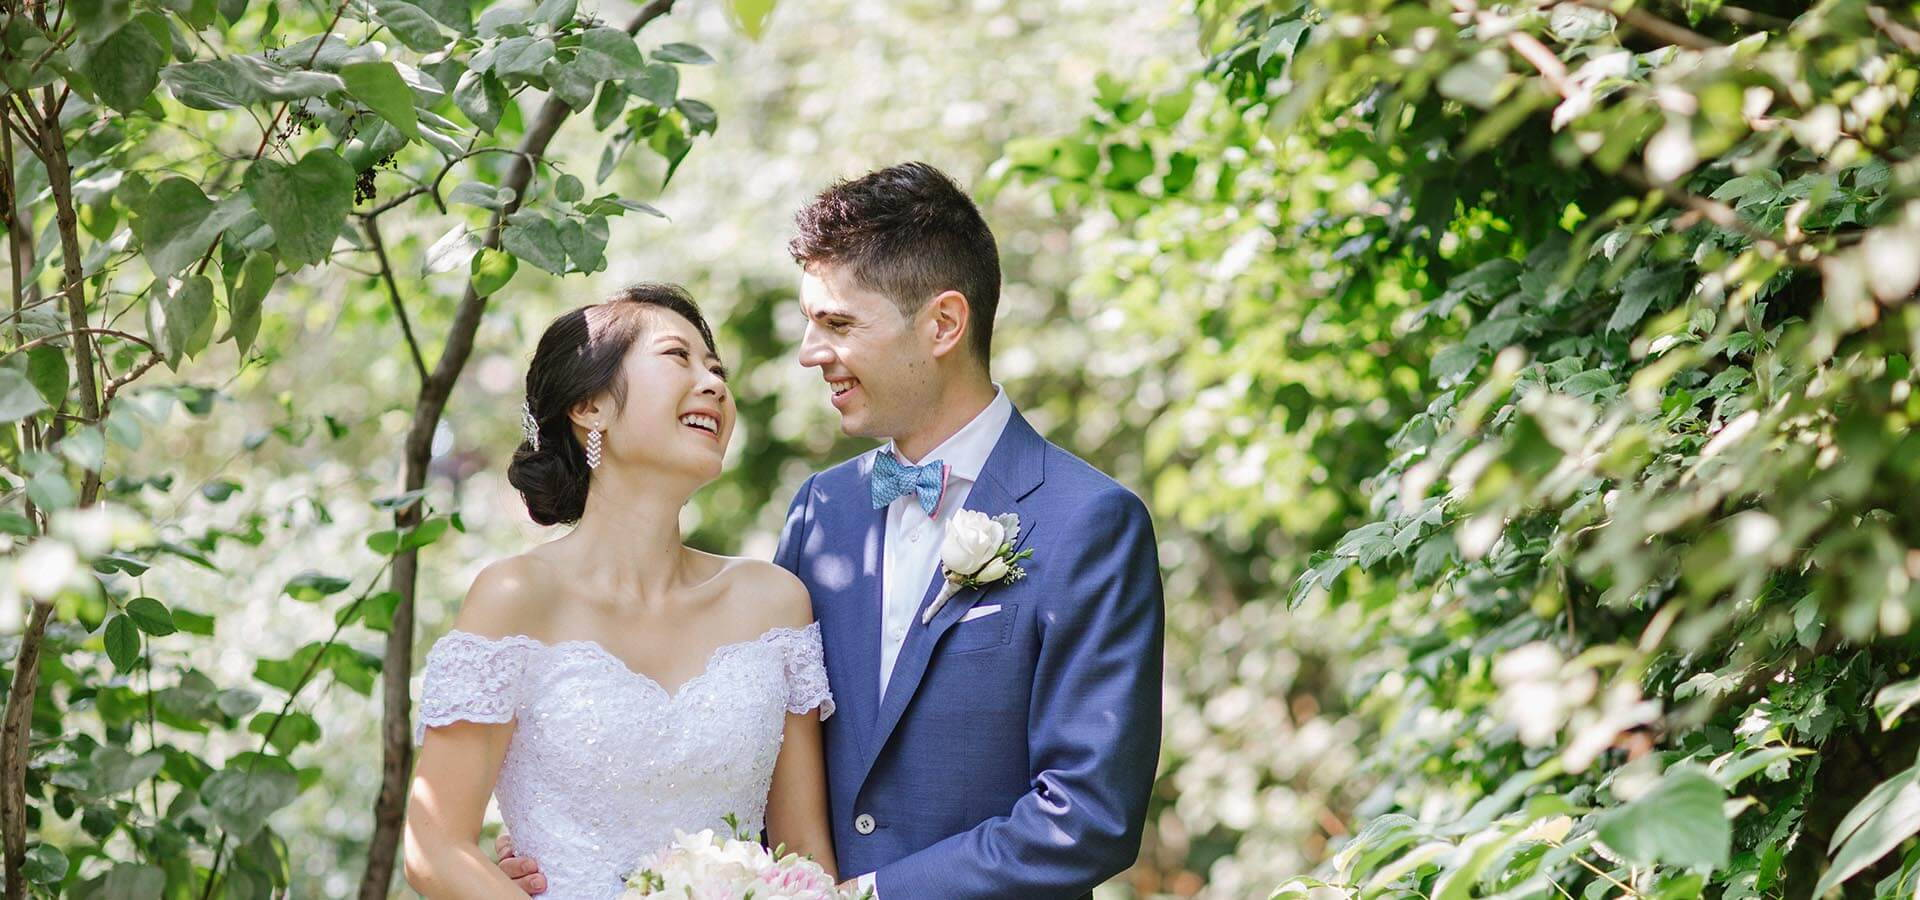 Hero image for Jovy and Dave's Enchanting Wedding at Casa Loma and The Aperture Room